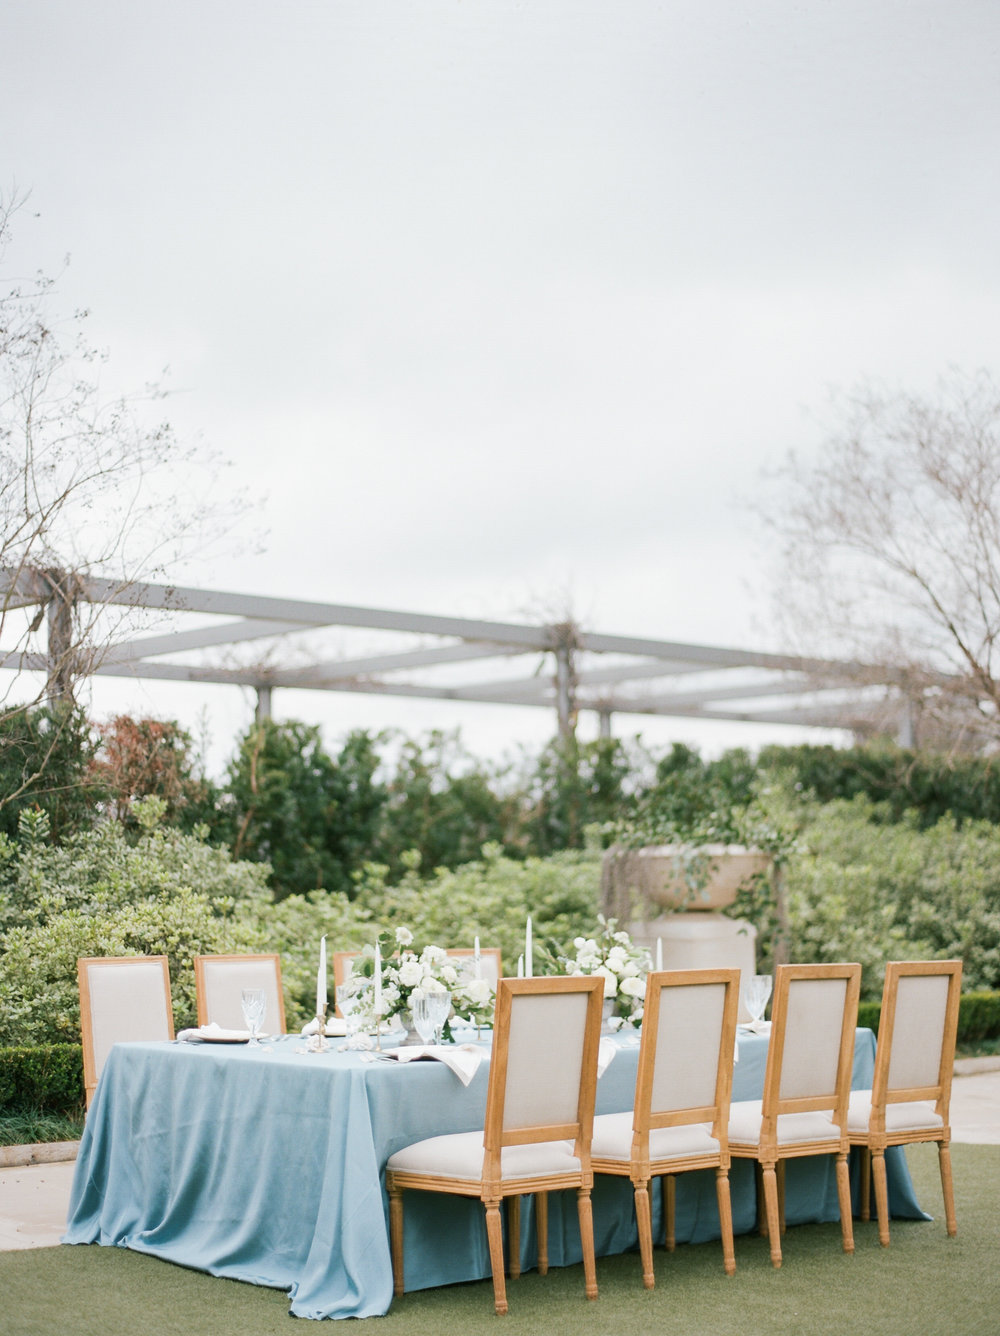 McGovern-Centennial-Gardens-Houston-Texas-Wedding-Venue-Josh-Dana-Fernandez-Photography-Film-Destination-Fine-Art-Luxury-Top-Best-Austin-Dallas-Magnolia-Rouge-Jennifer-Laura-Design-205.jpg